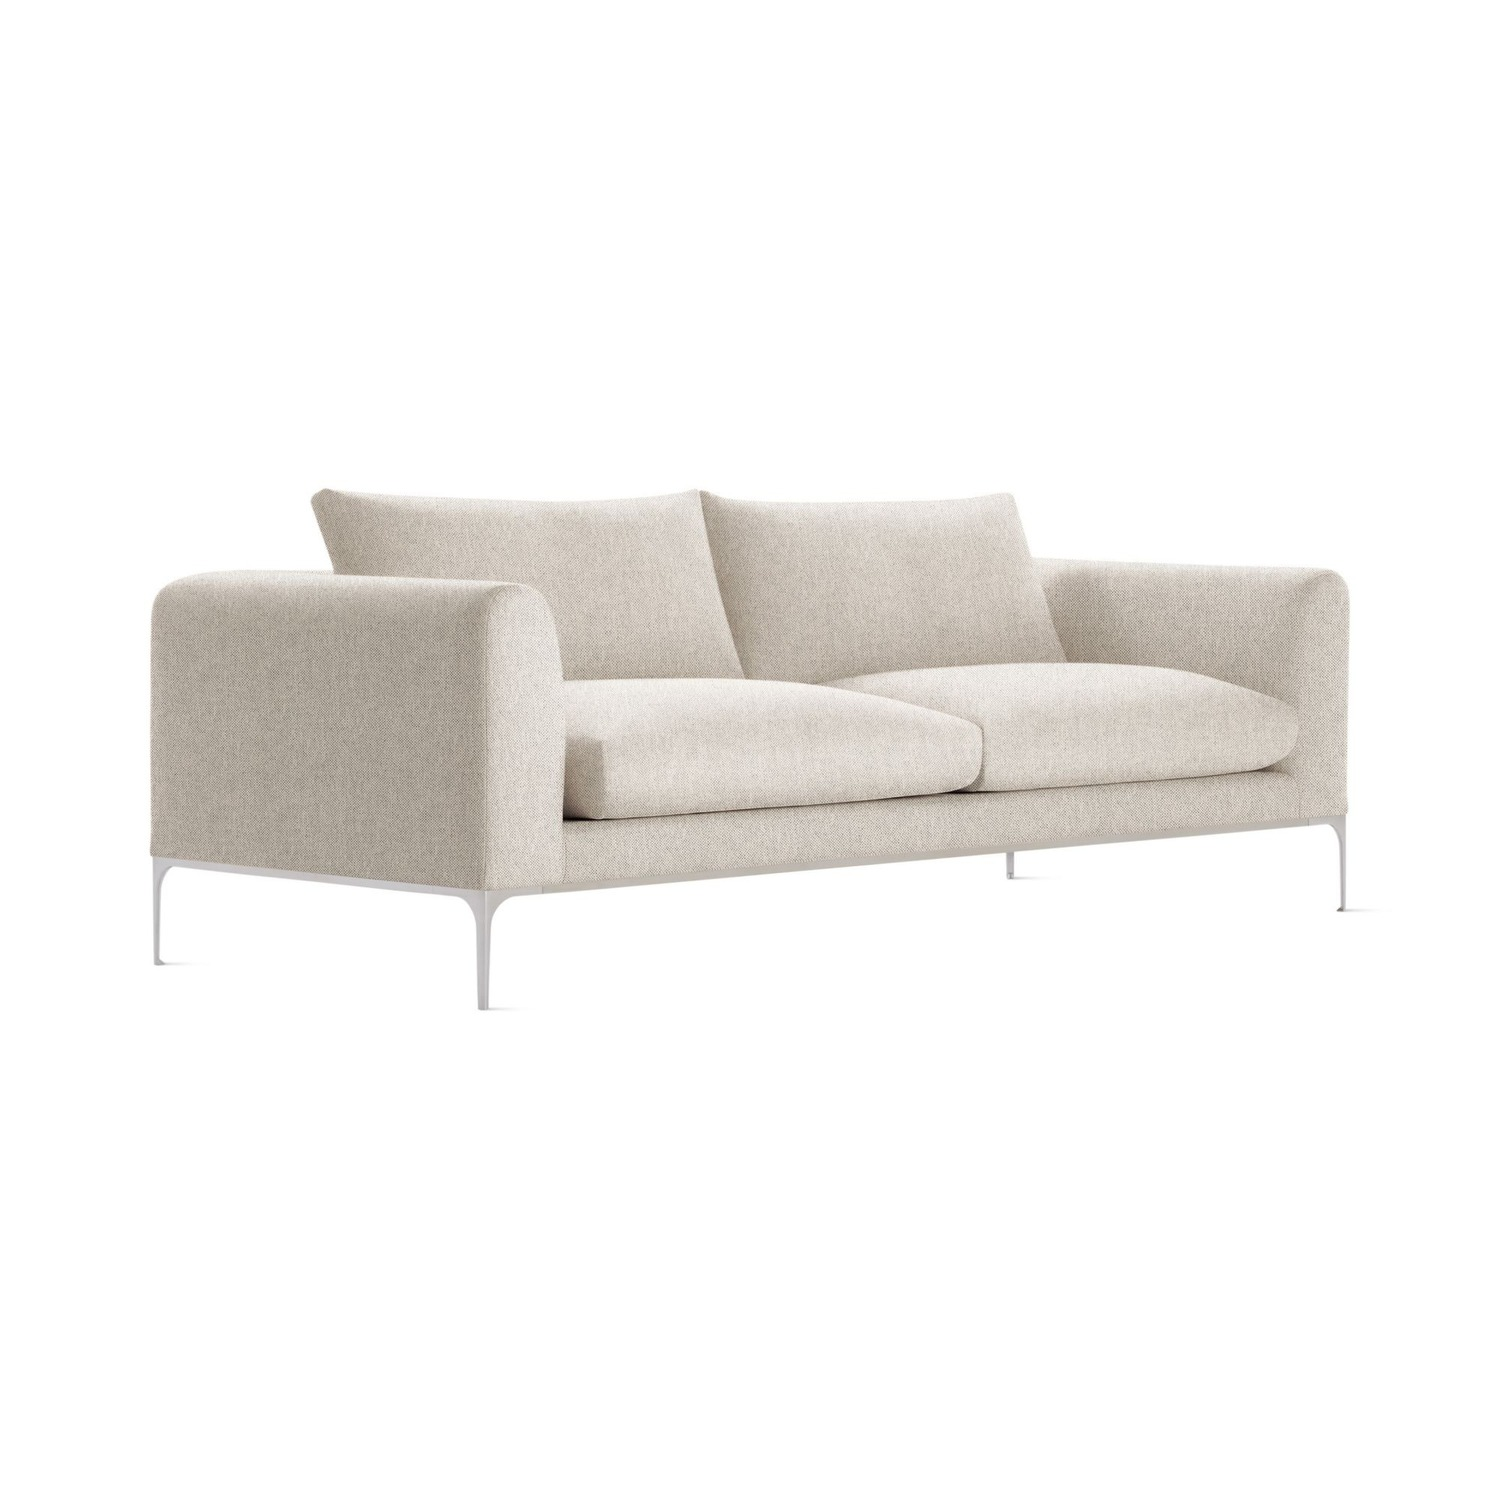 Beautiful DWR Couch